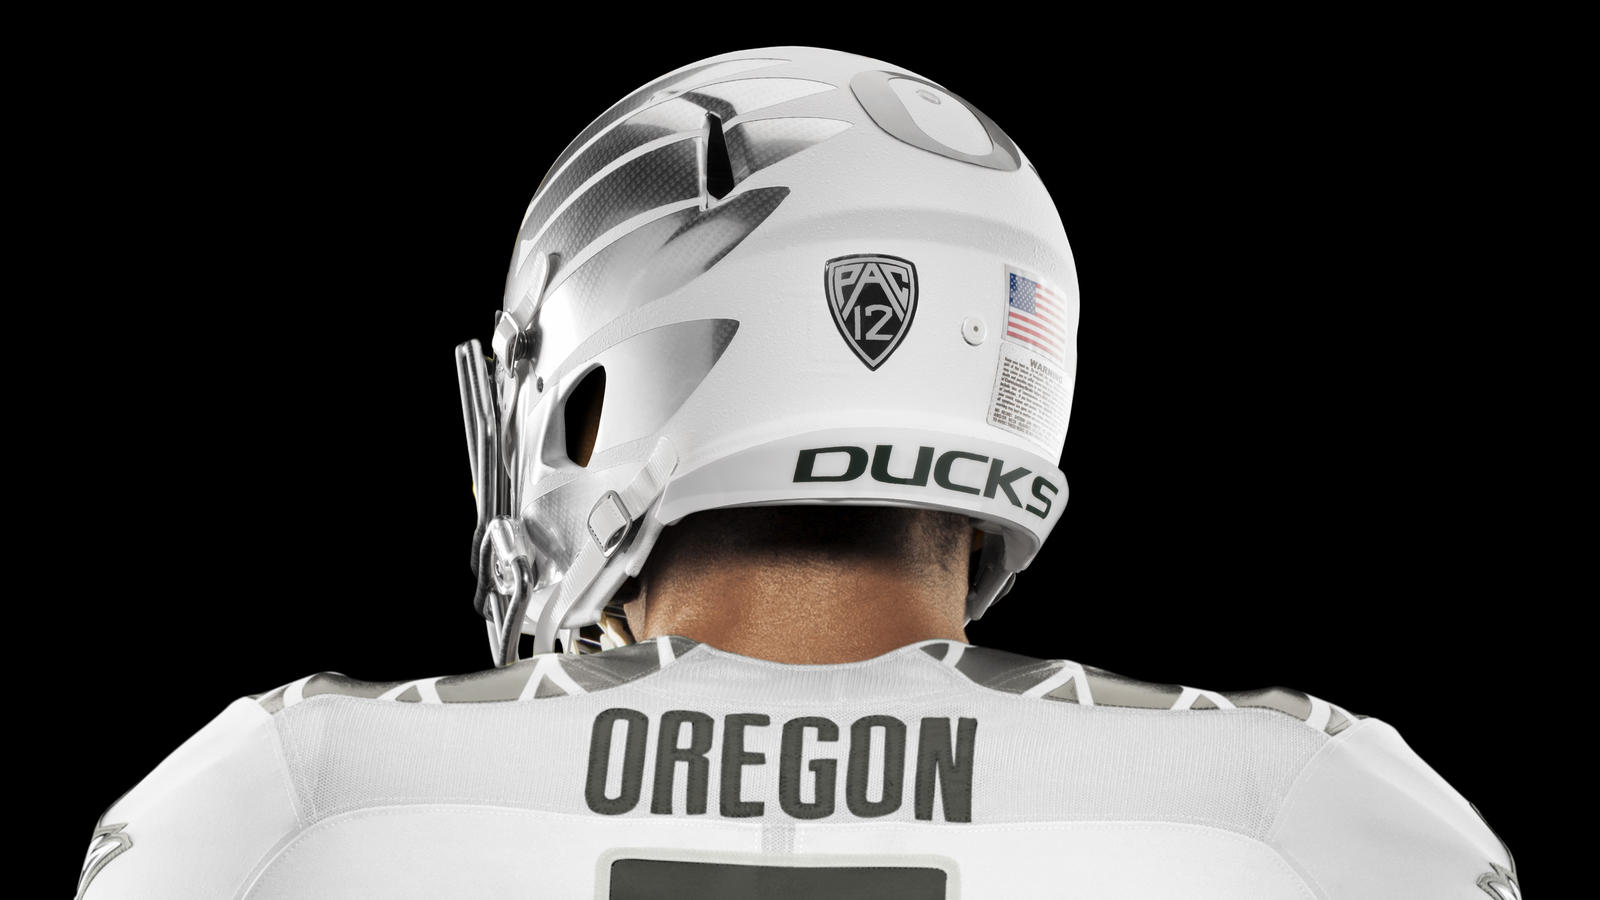 HO14 NFB NCAA Oregon Uniform 439 V2 crop 2 HR.  HO14 NFB NCAA Oregon Details 613 RGB crop 1 HR.  HO14 NFB NCAA Oregon PantOption 1920 V2 HR 89c85c803